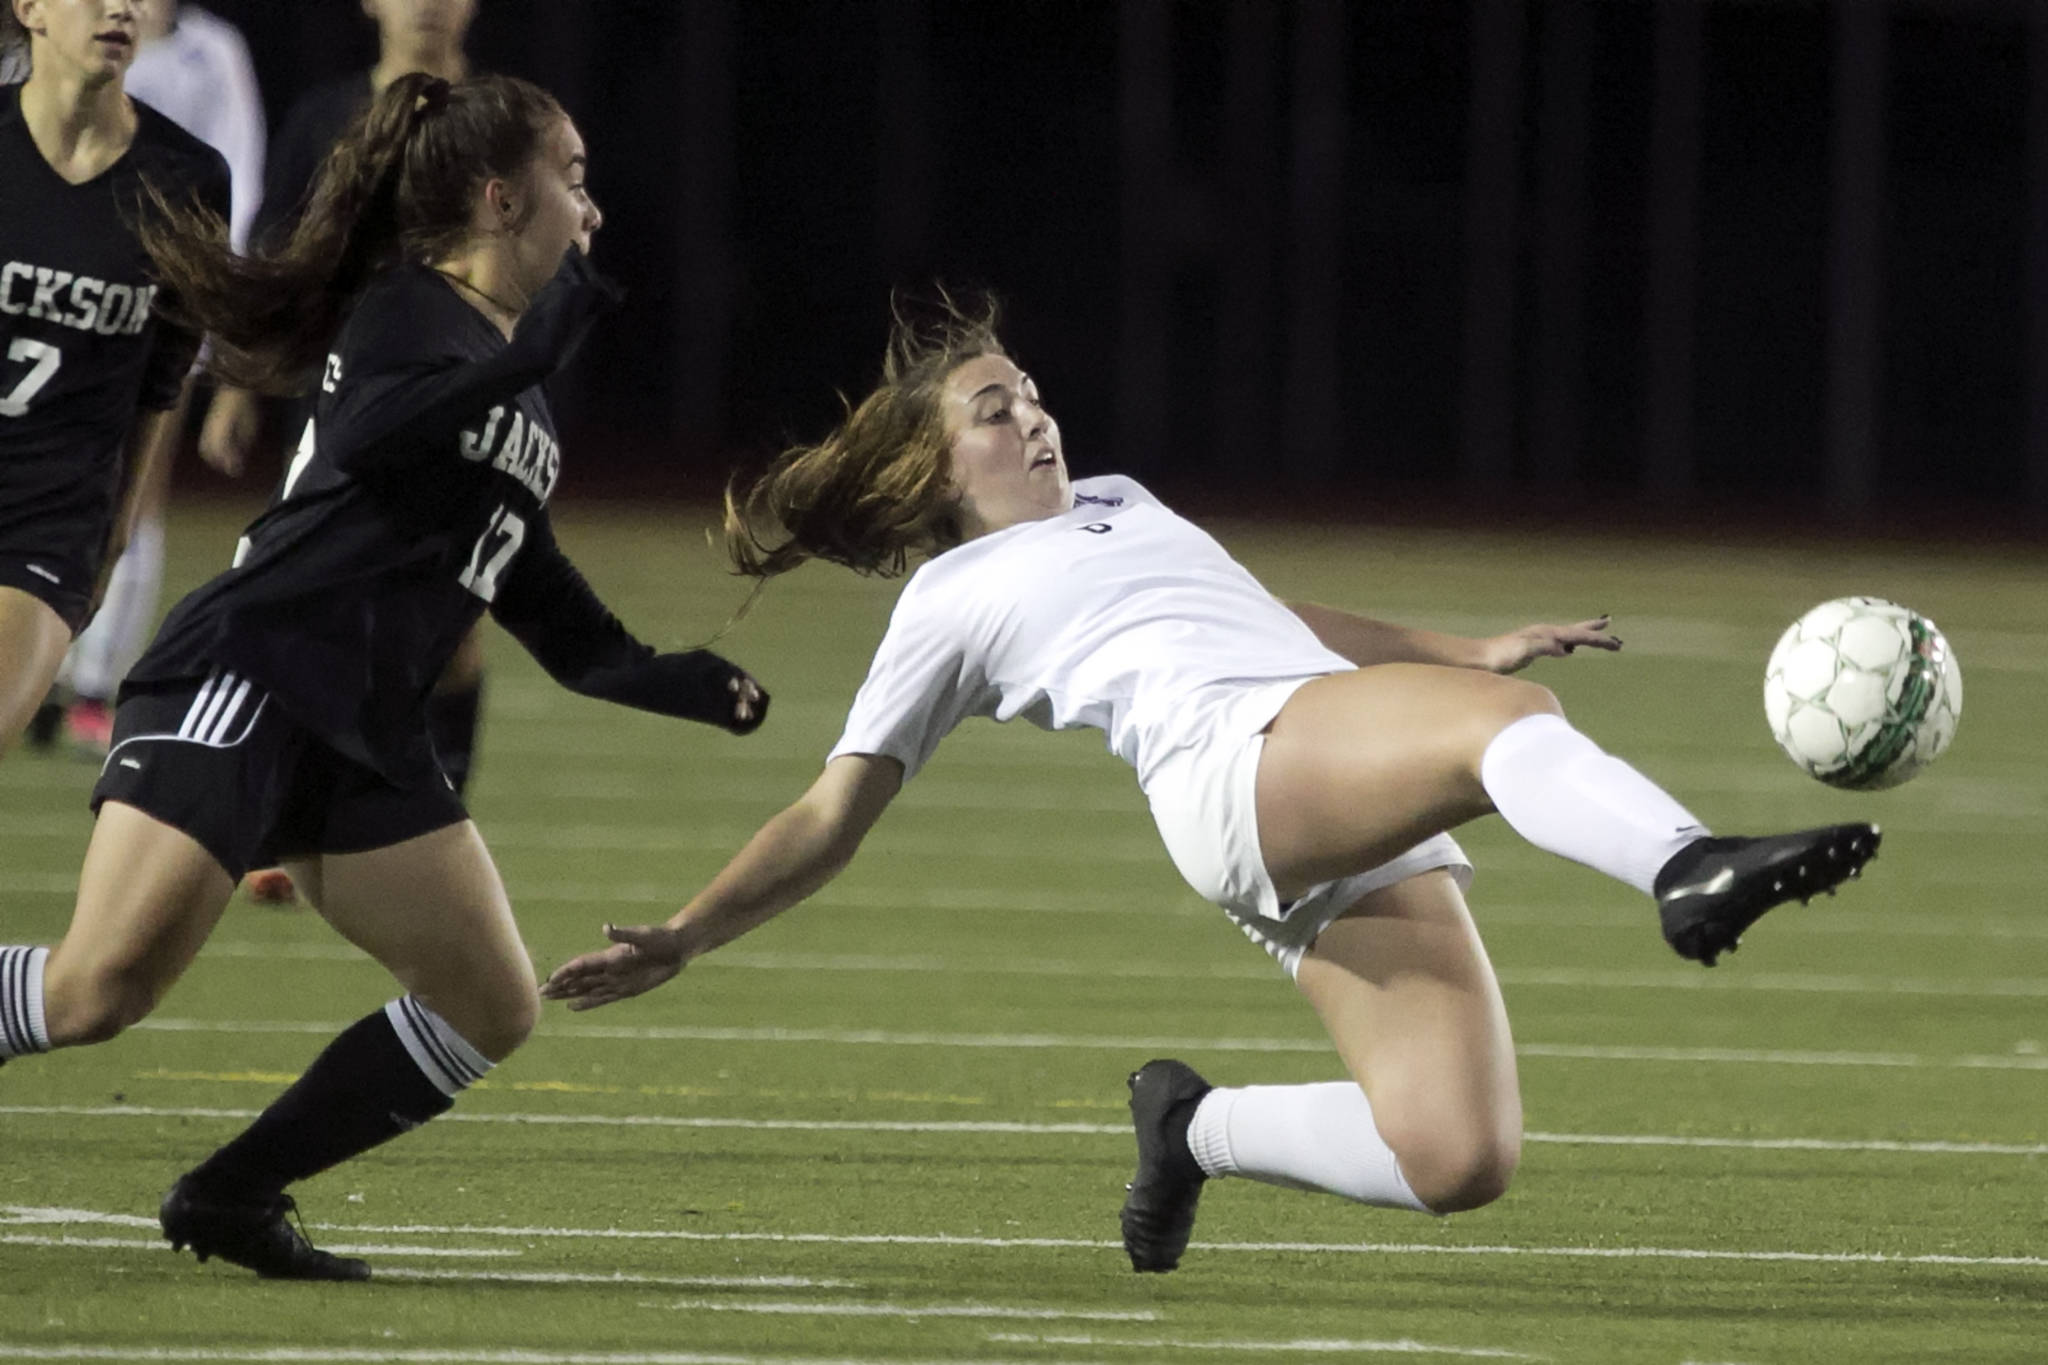 Lake Stevens' Samantha Foley (right) attempts a clearing kick with Jackson's Natalie Hawkins (left) trailing at Everett Memorial Stadium on Oct. 25. (Kevin Clark / The Herald)